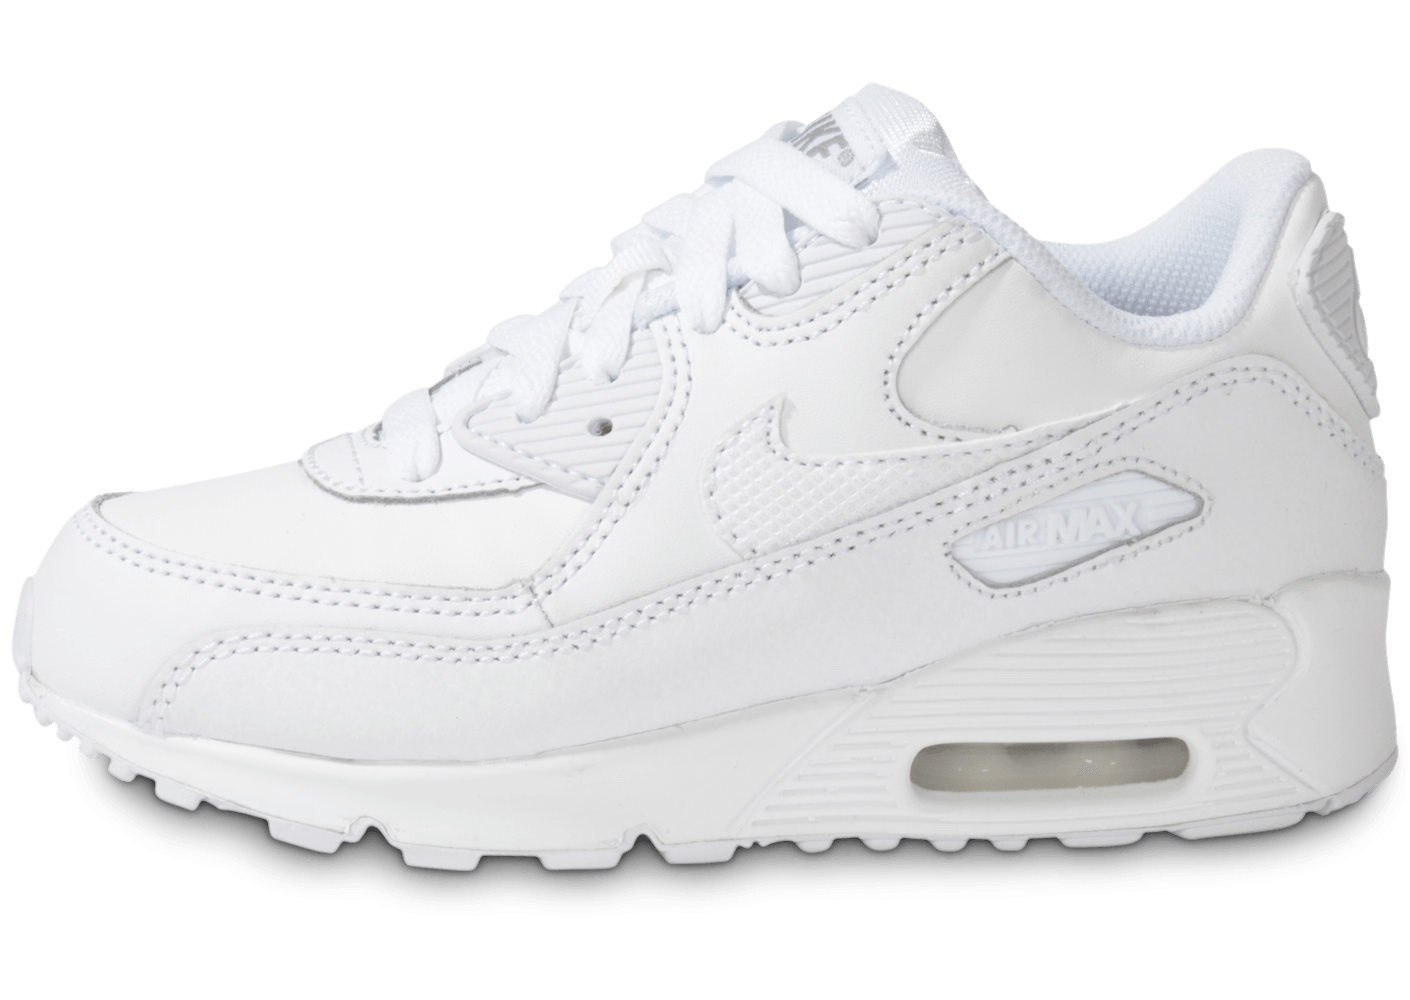 reputable site 5be0e cd9e2 Chaussures Homme Baskets basses Nike AIR MAX 90 LEATHER Blanc Basket Nike  Air Max 90 Leather Bébé - 833416-001 NIKE nike air presto full black rouge  blanc ...